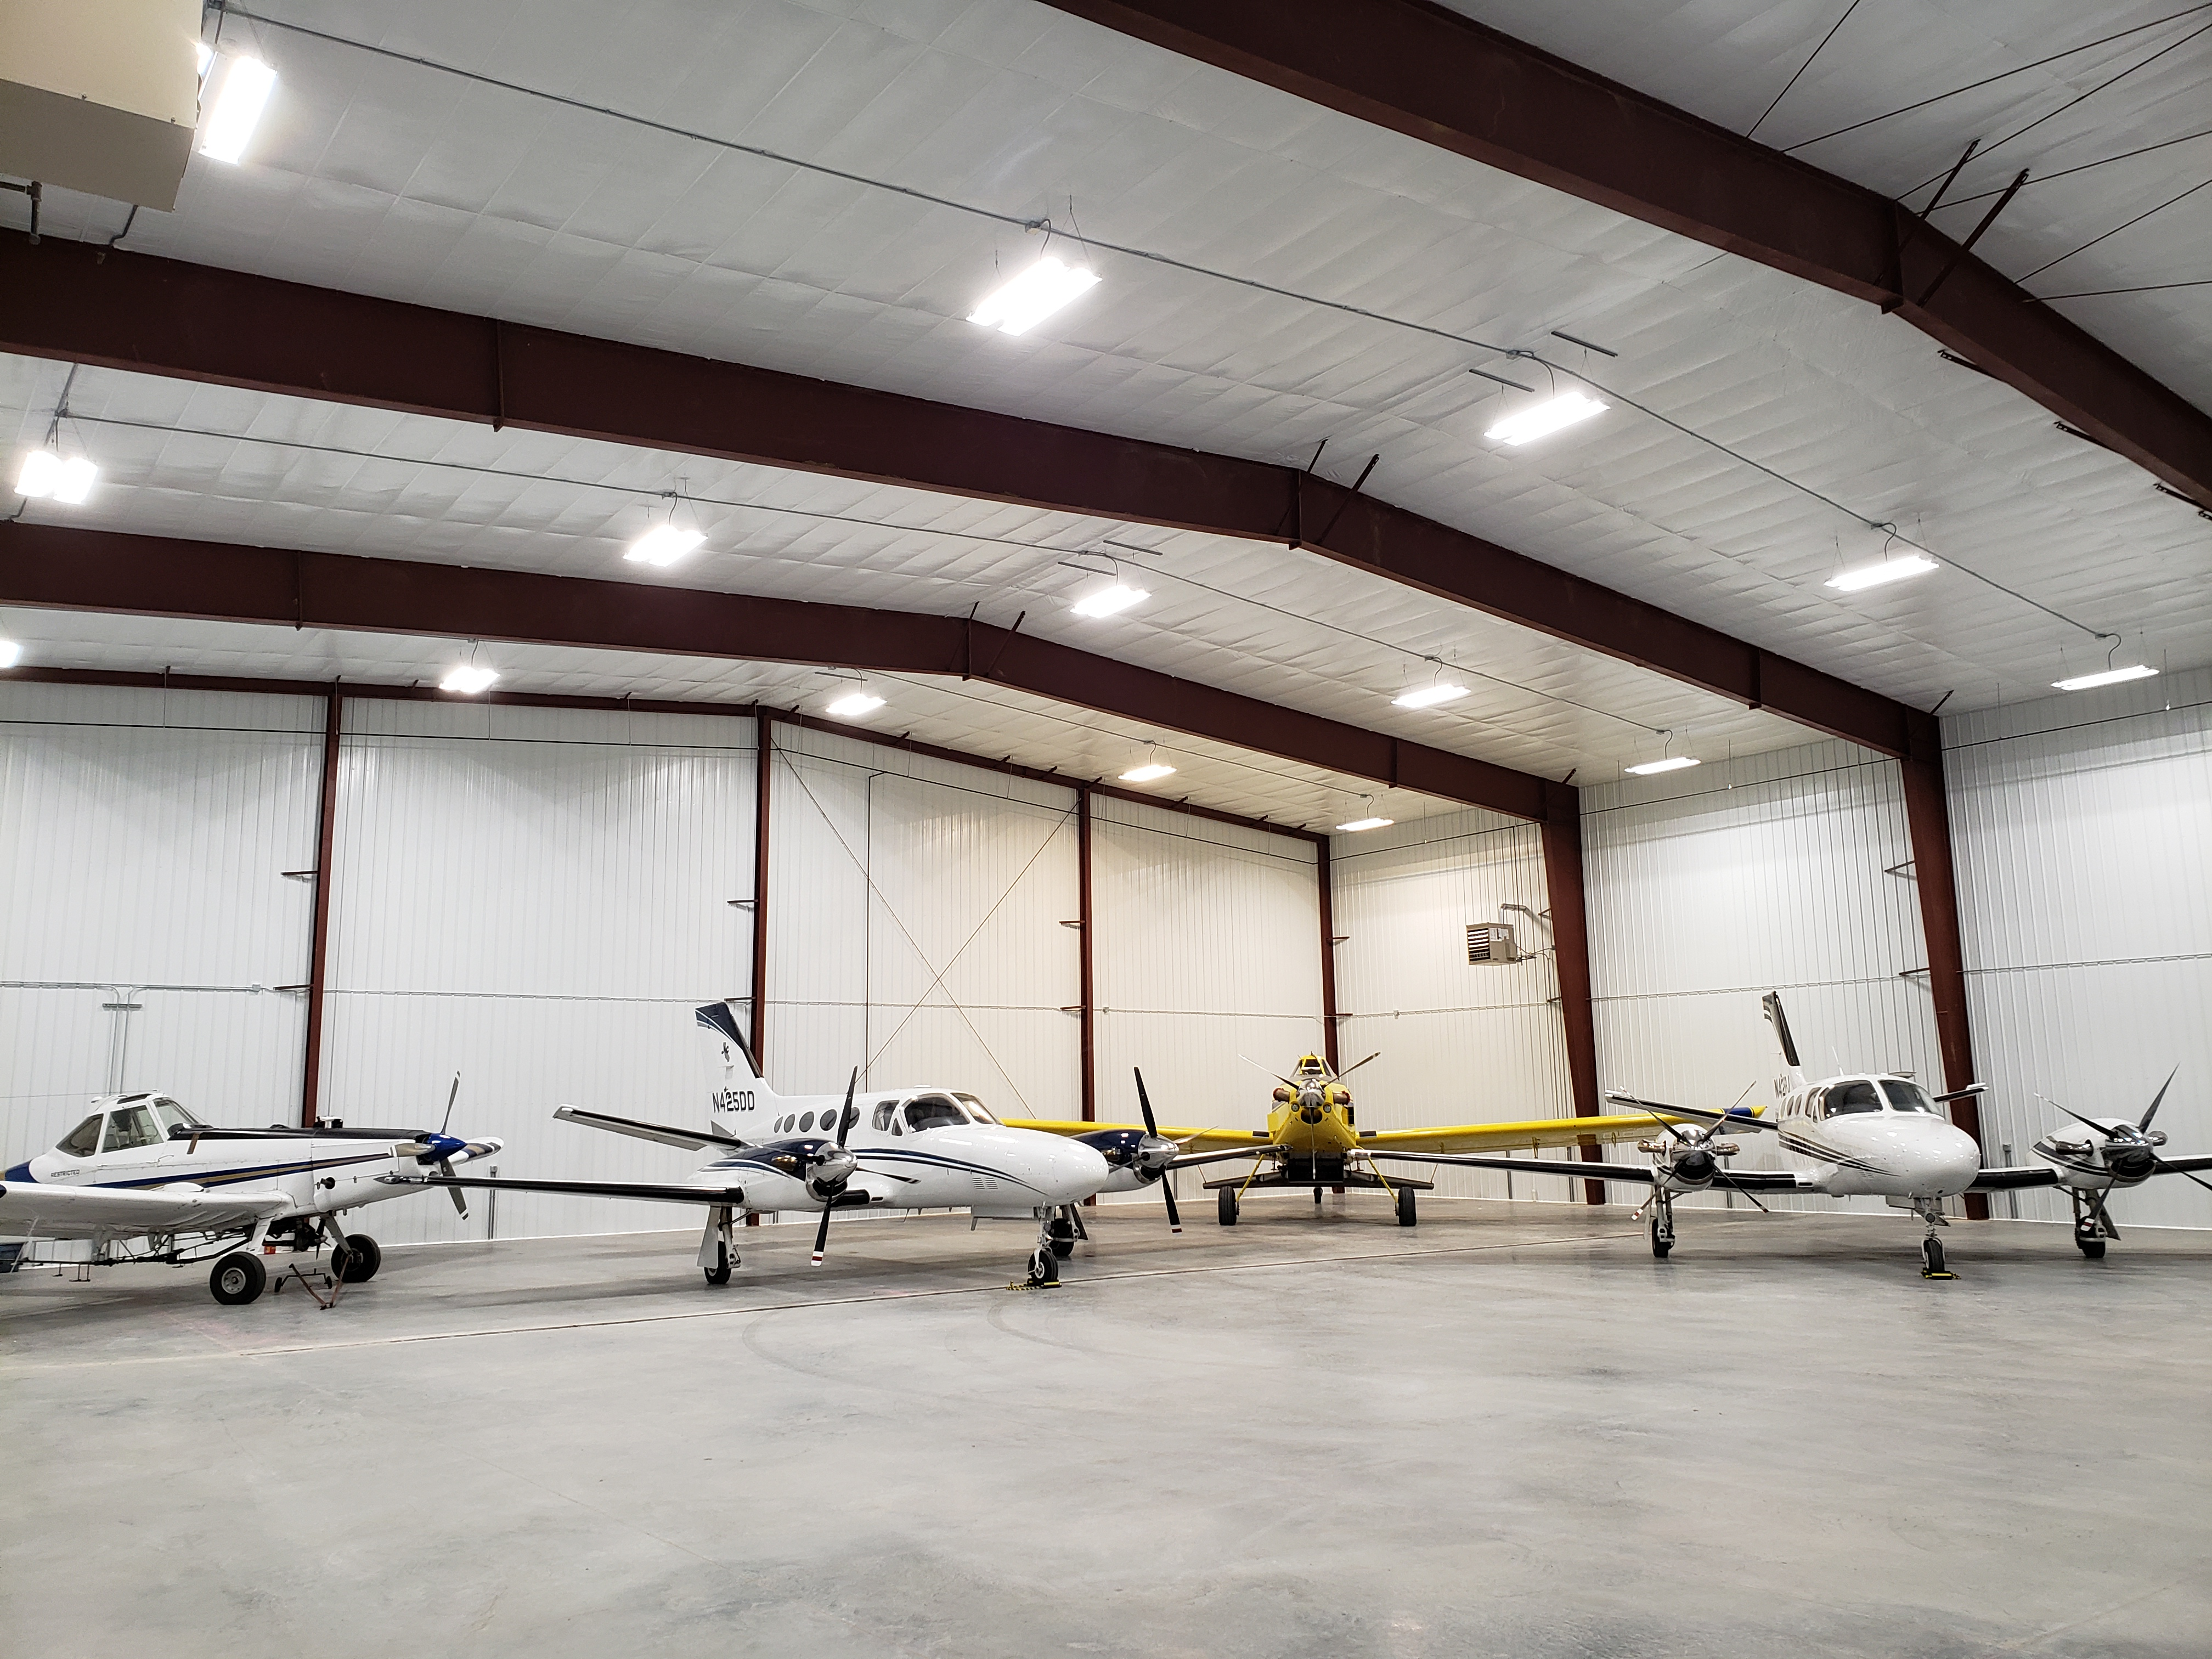 hangar with white planes and spray plane